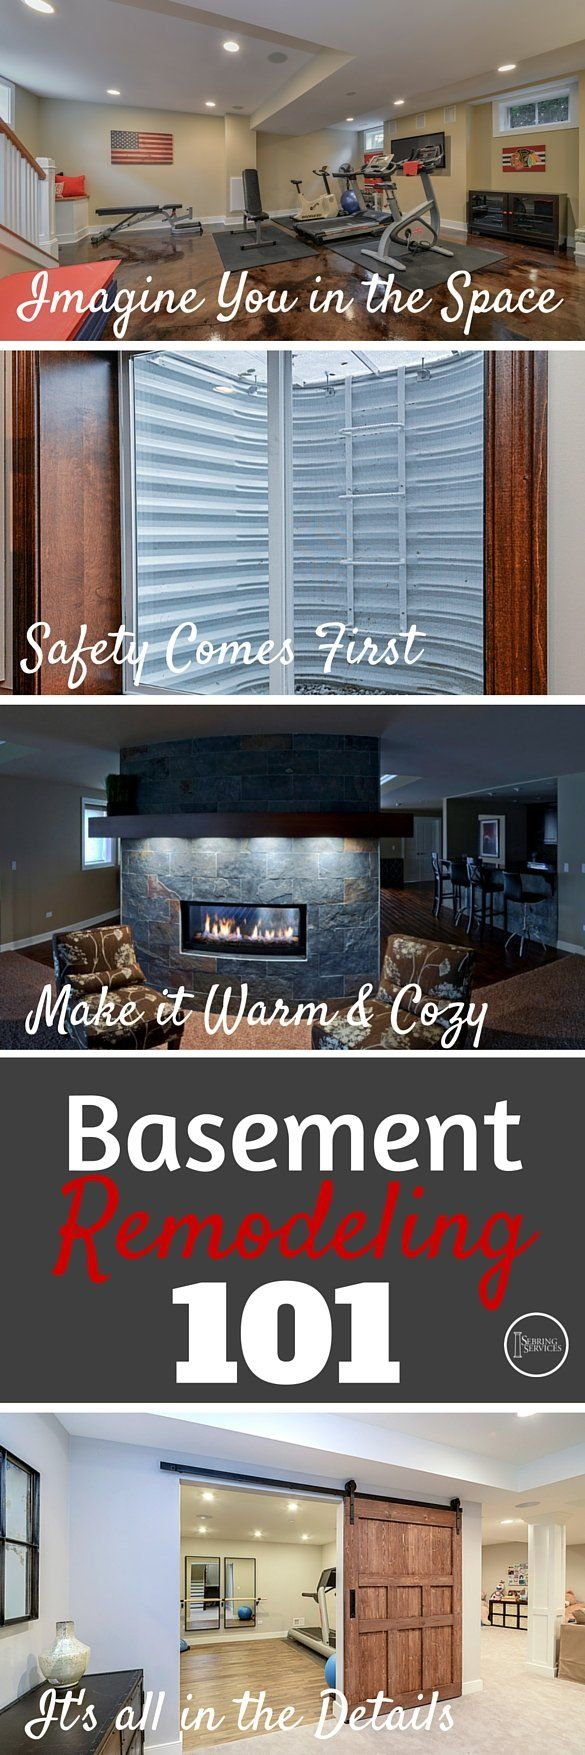 Finished basements are a large part of our business often featuring - Finished Basements Are A Large Part Of Our Business Often Featuring Basement Remodeling 101 Important Download